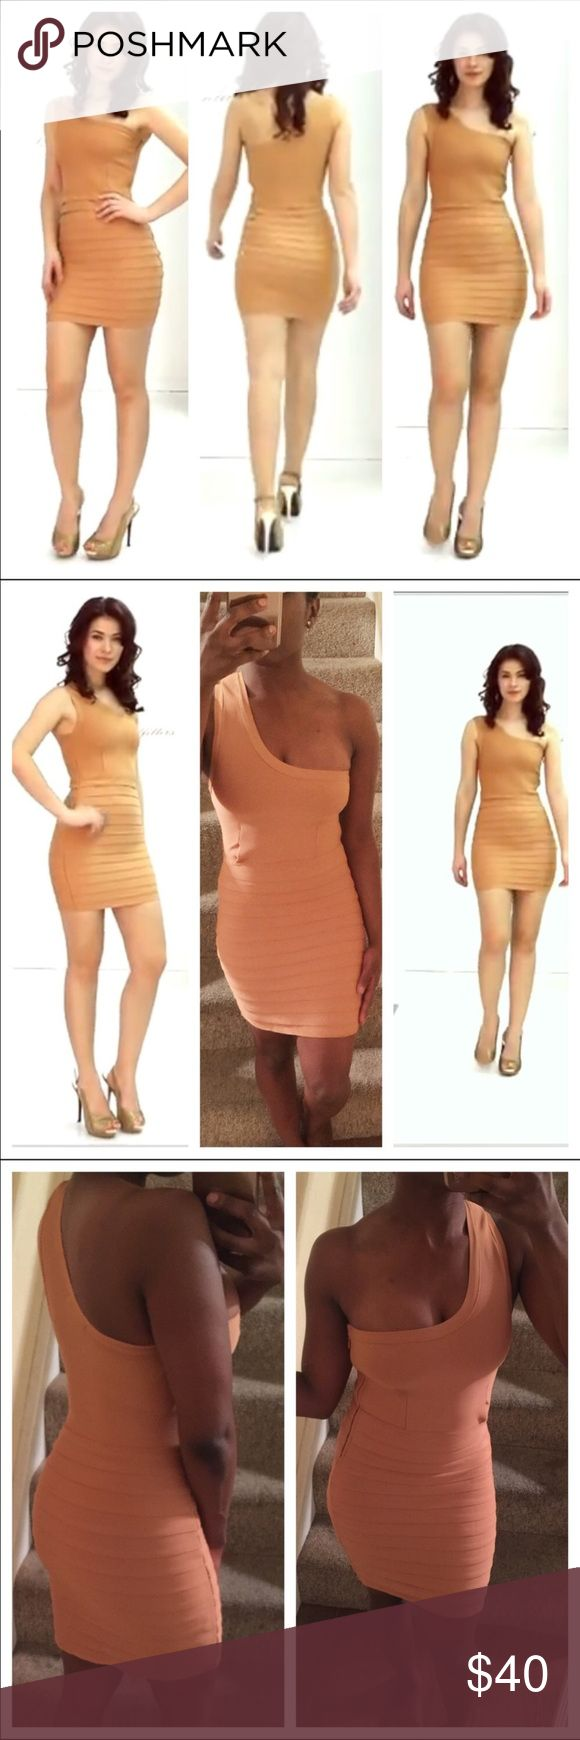 🔥 One-Shoulder Bandage Dress Caramel Brown Colored Bandage dress from WOW Couture. Purchased on Asos.com. Beautiful dress sure to turn heads. Worn out one time. Zips at the side. True to a size small, may fit up to a size 6. Measurements available upon request. Short, above the knee. Stretches. Bodycon tube dress with tiered layers at the skirt. Similar brands include house of cb, celeb boutique, tobi, fashion nova, missguided, bebe, bcbg, herve leger and express. ASOS Dresses One Shoulder